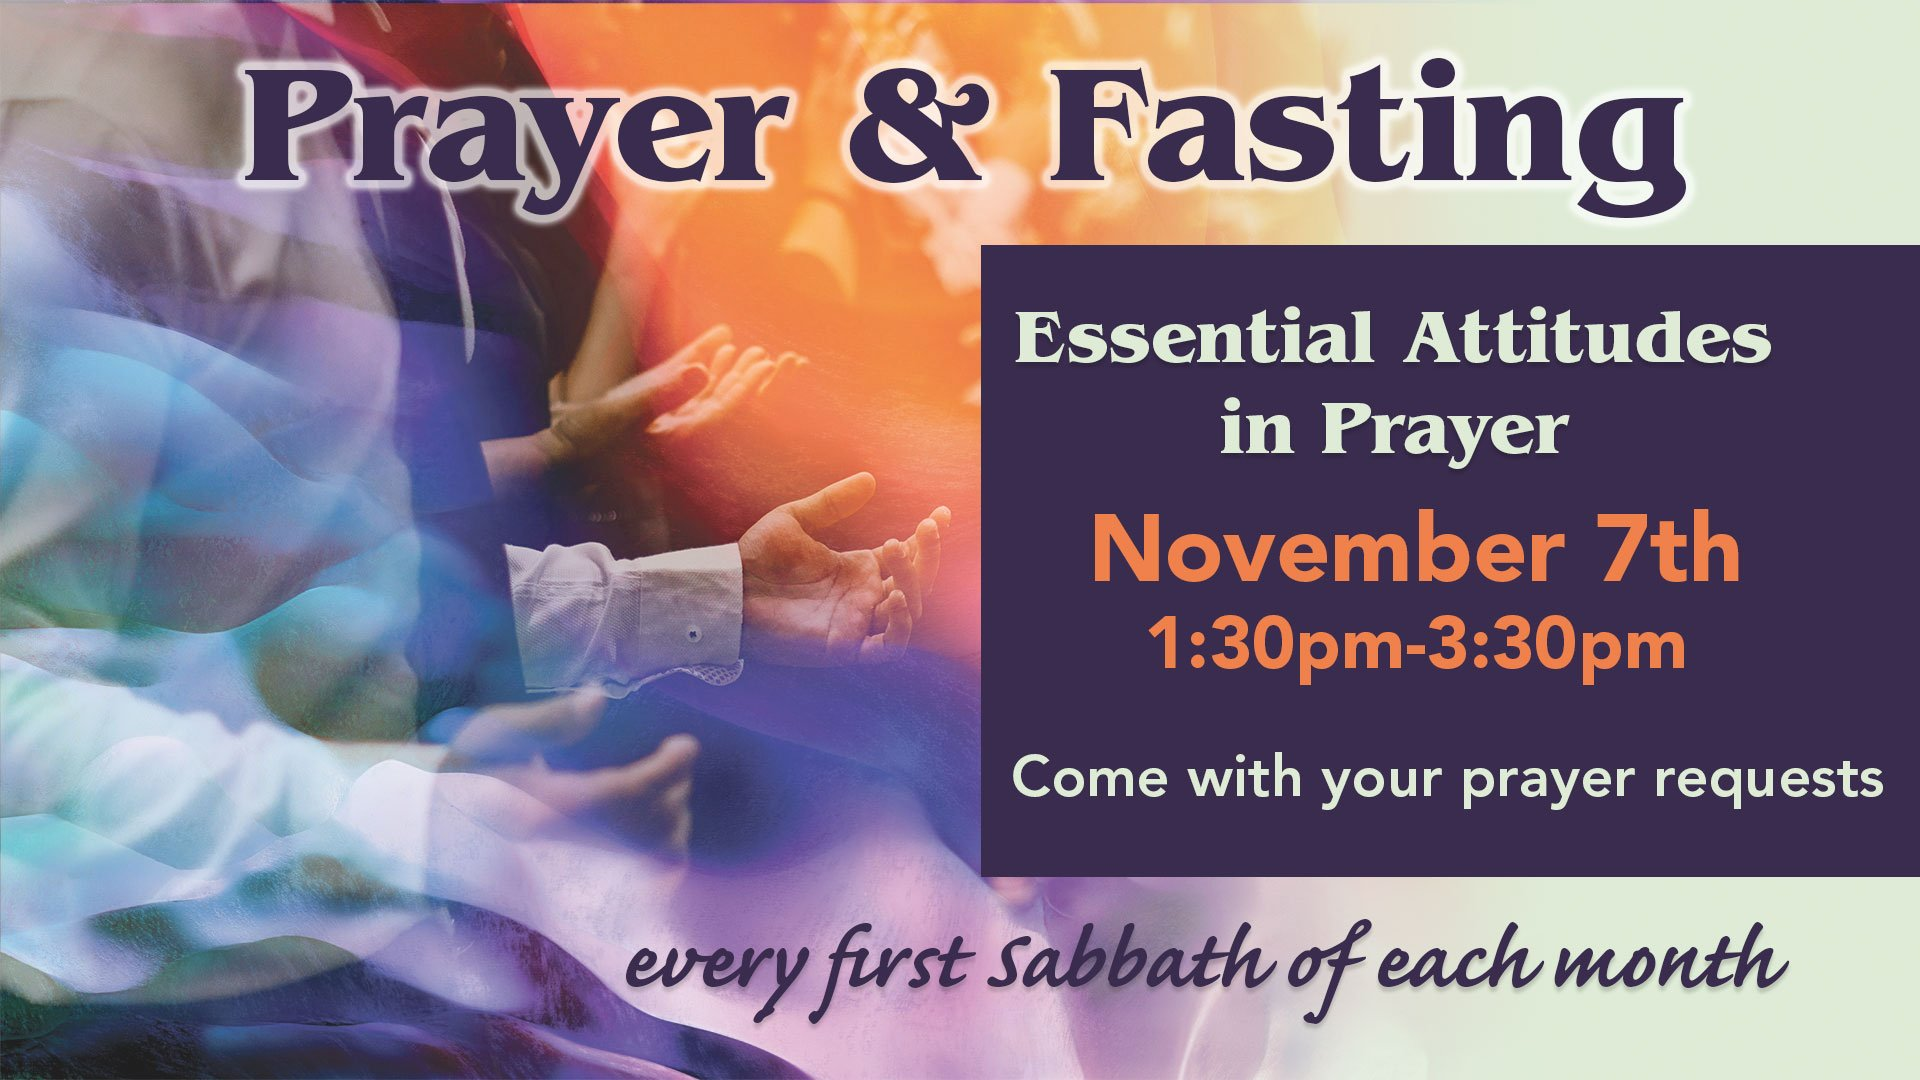 Prayer & Fasting - Essential Attitudes in Prayer